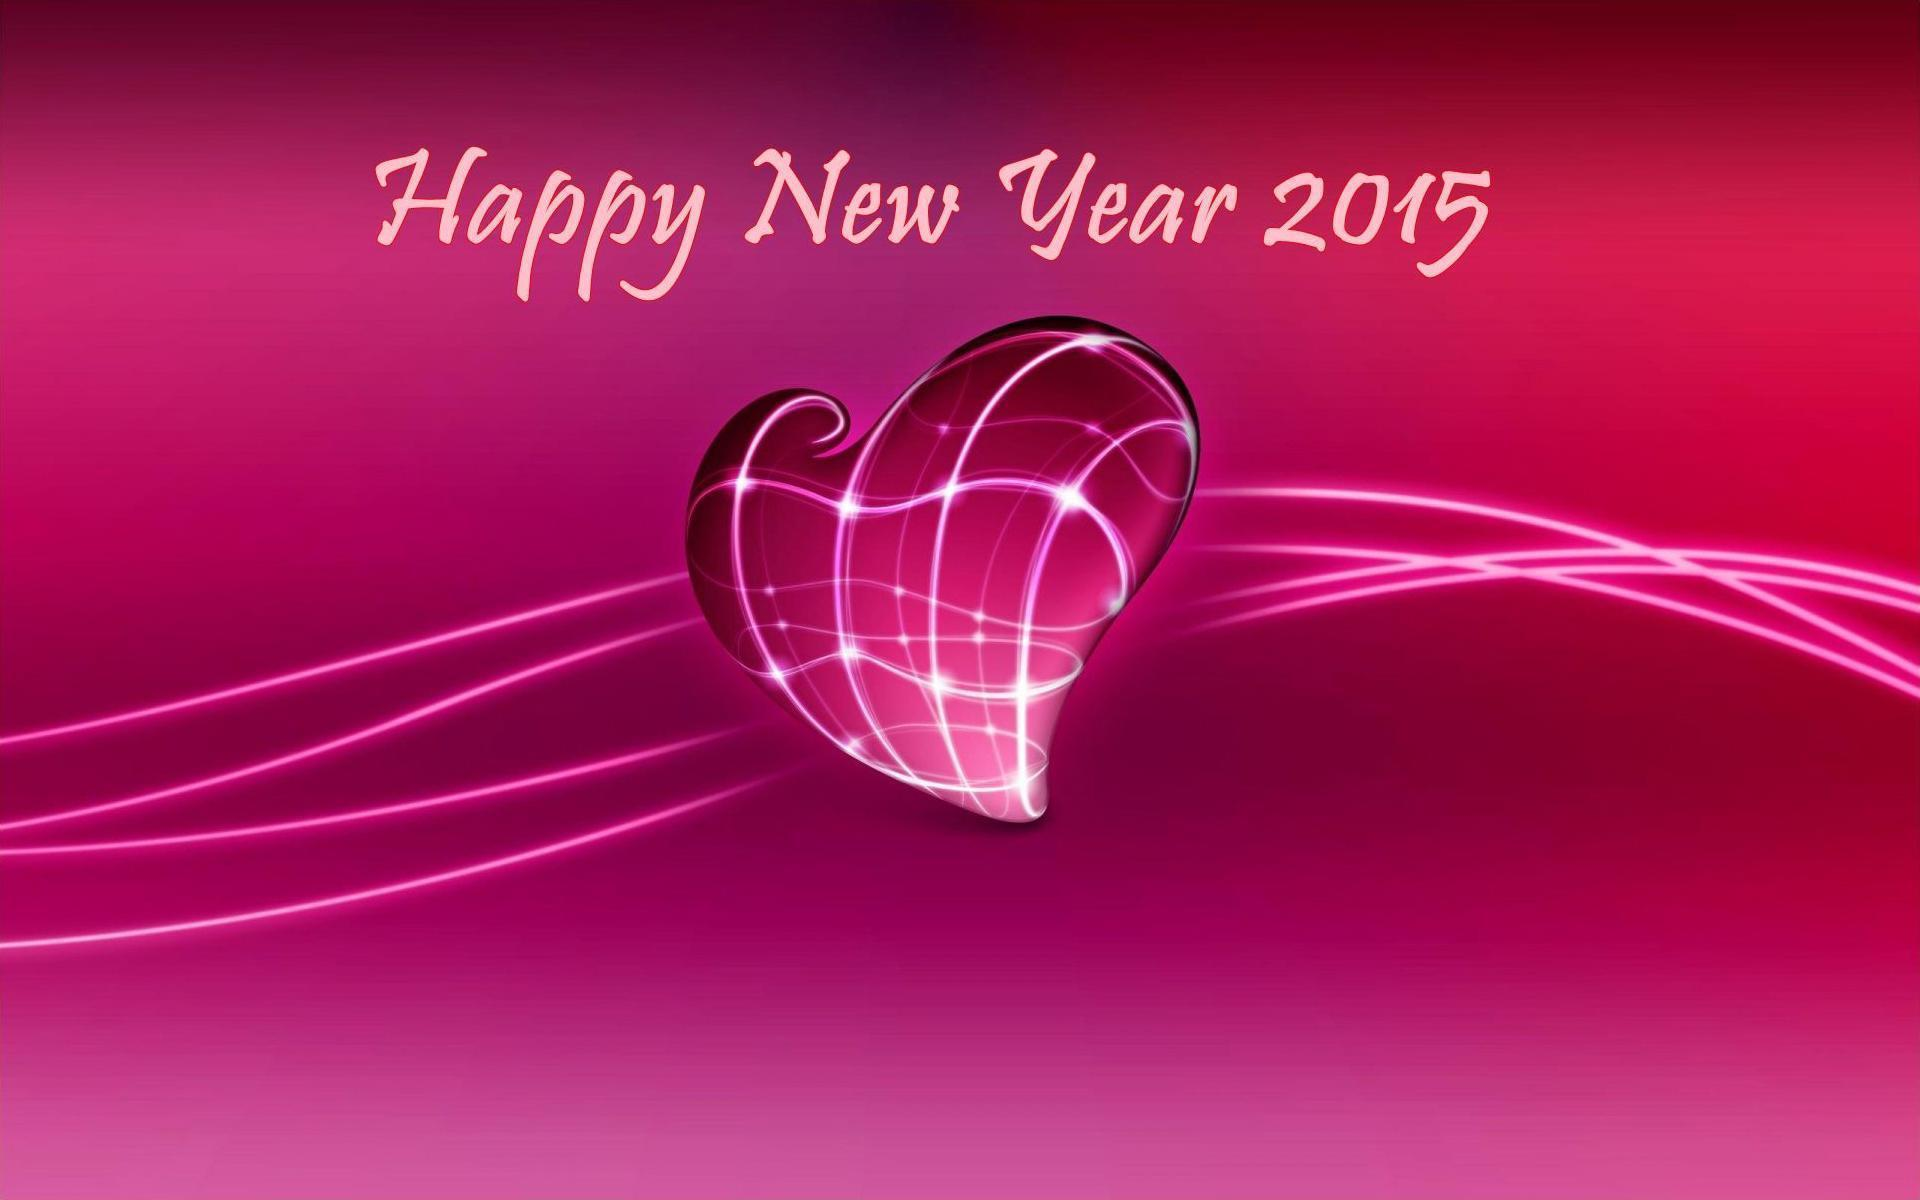 Love Wallpapers For New Year 2015 – 1920×1200 High Definition